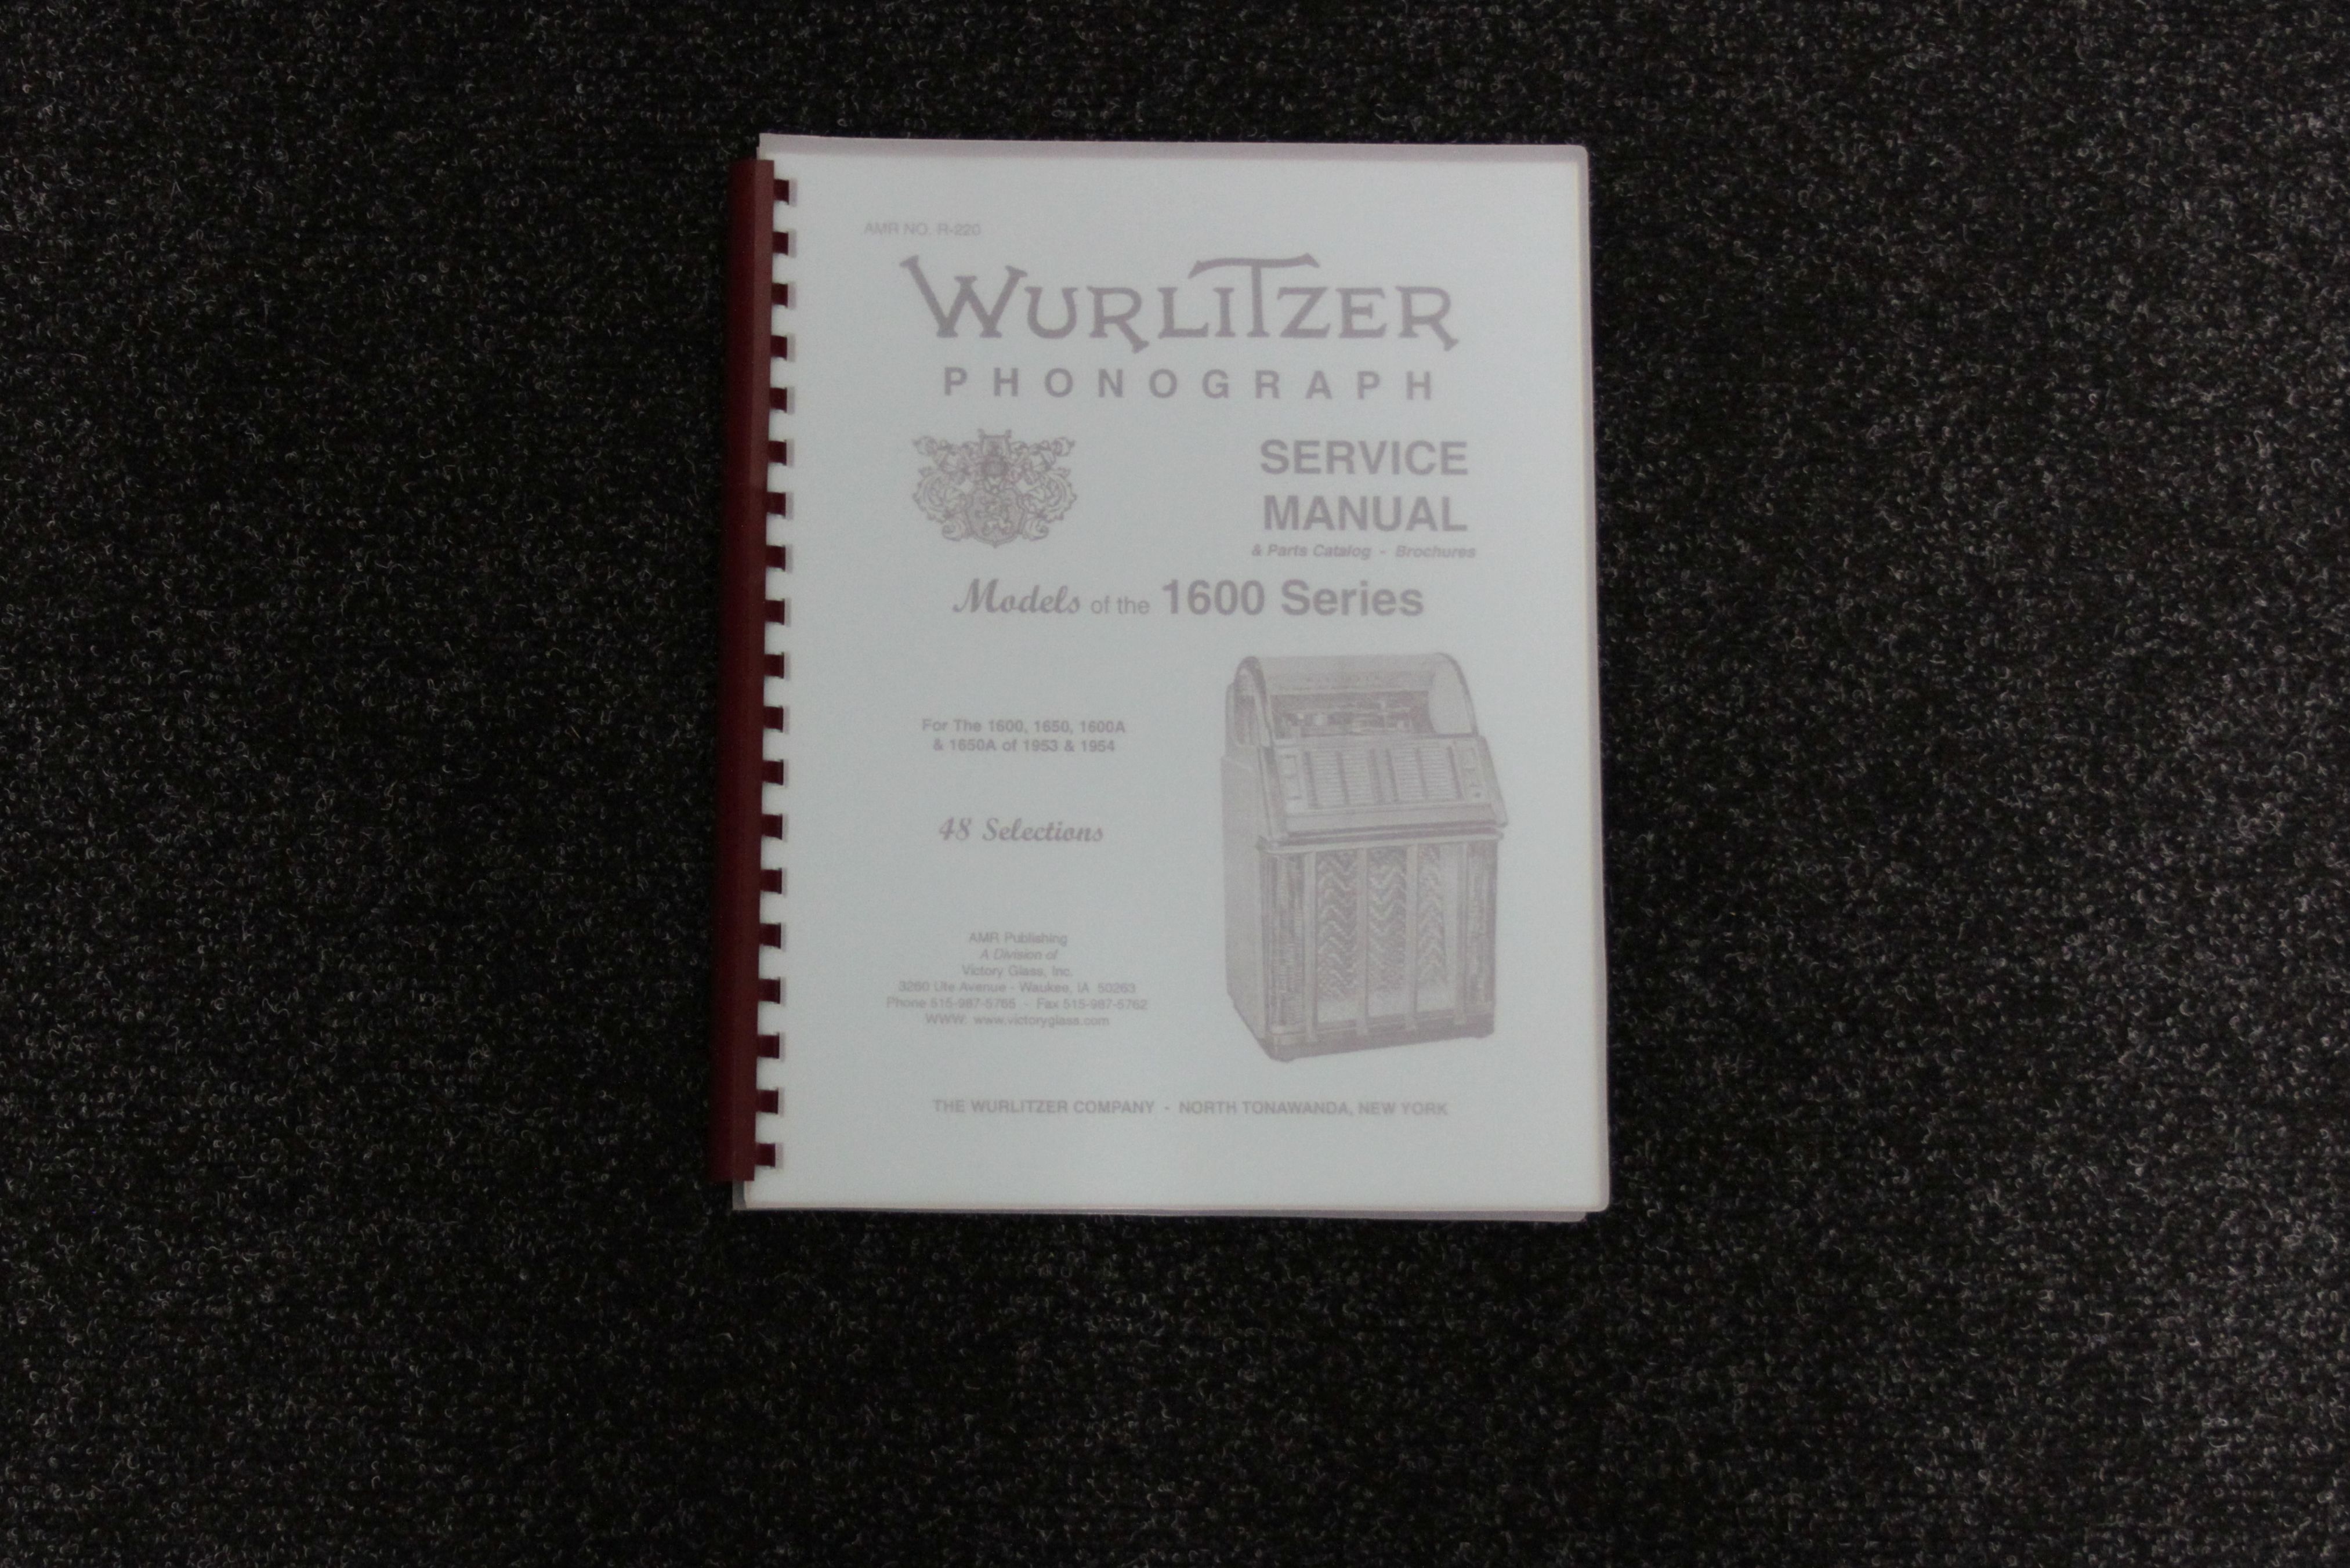 Wurlitzer Service Manual 1600 series